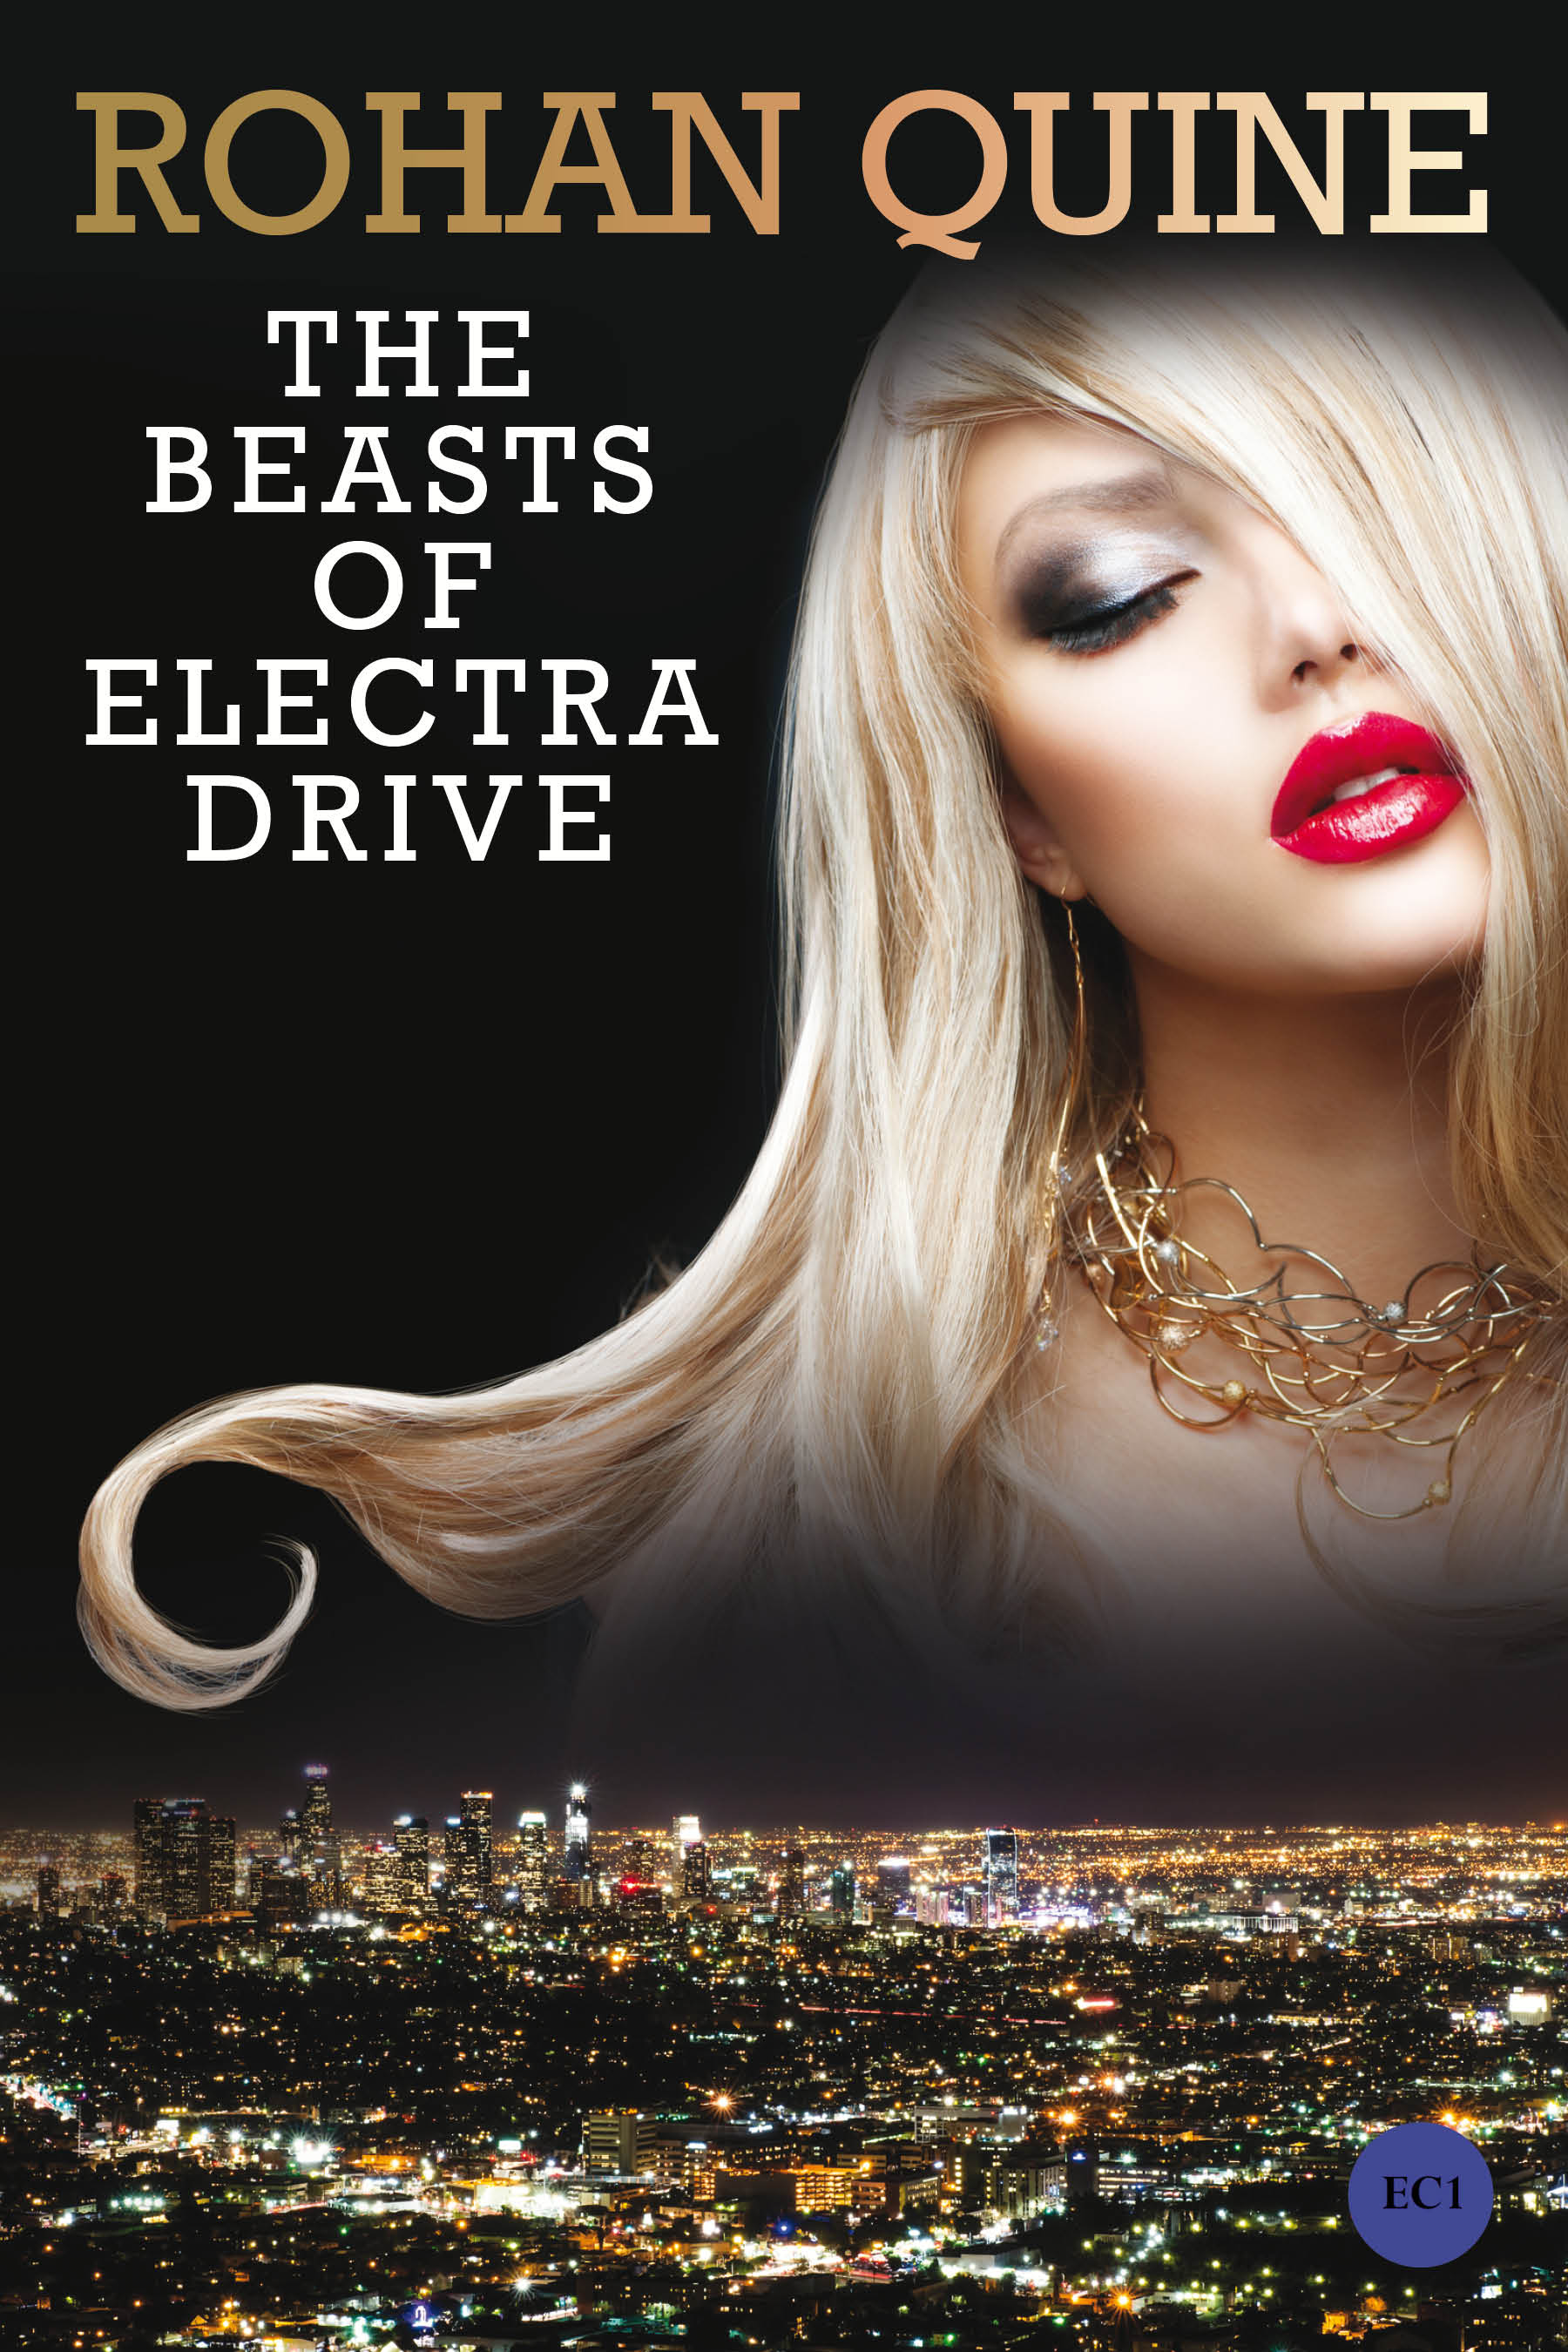 THE BEASTS OF ELECTRA DRIVE (novel) by Rohan Quine - paperback front cover and ebook cover (literary fiction, magical realism, horror)